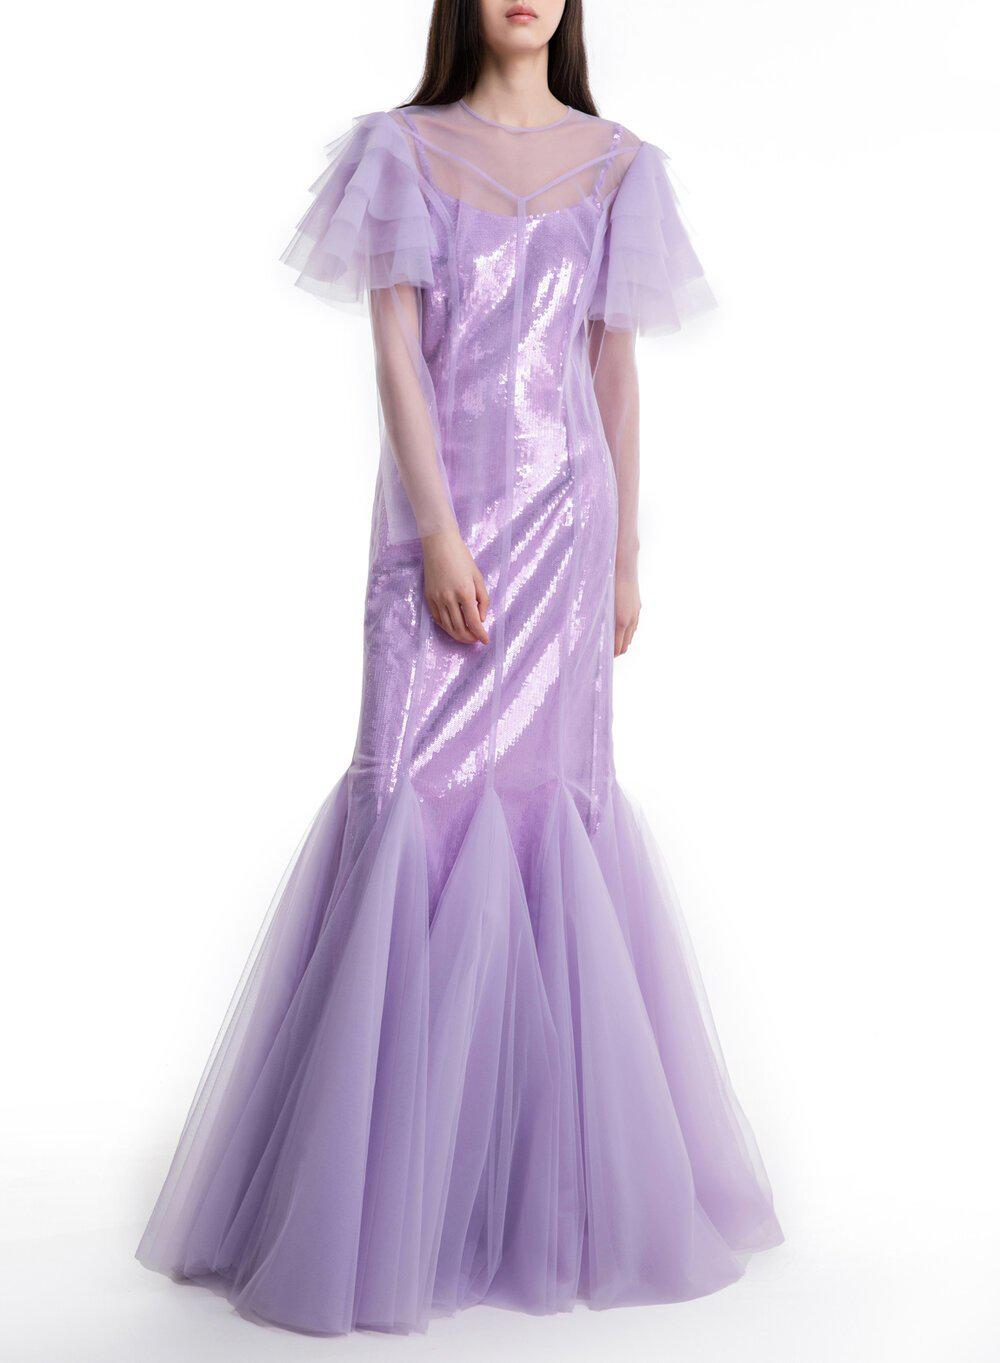 AURORA GOWN LILAC TULLE 1